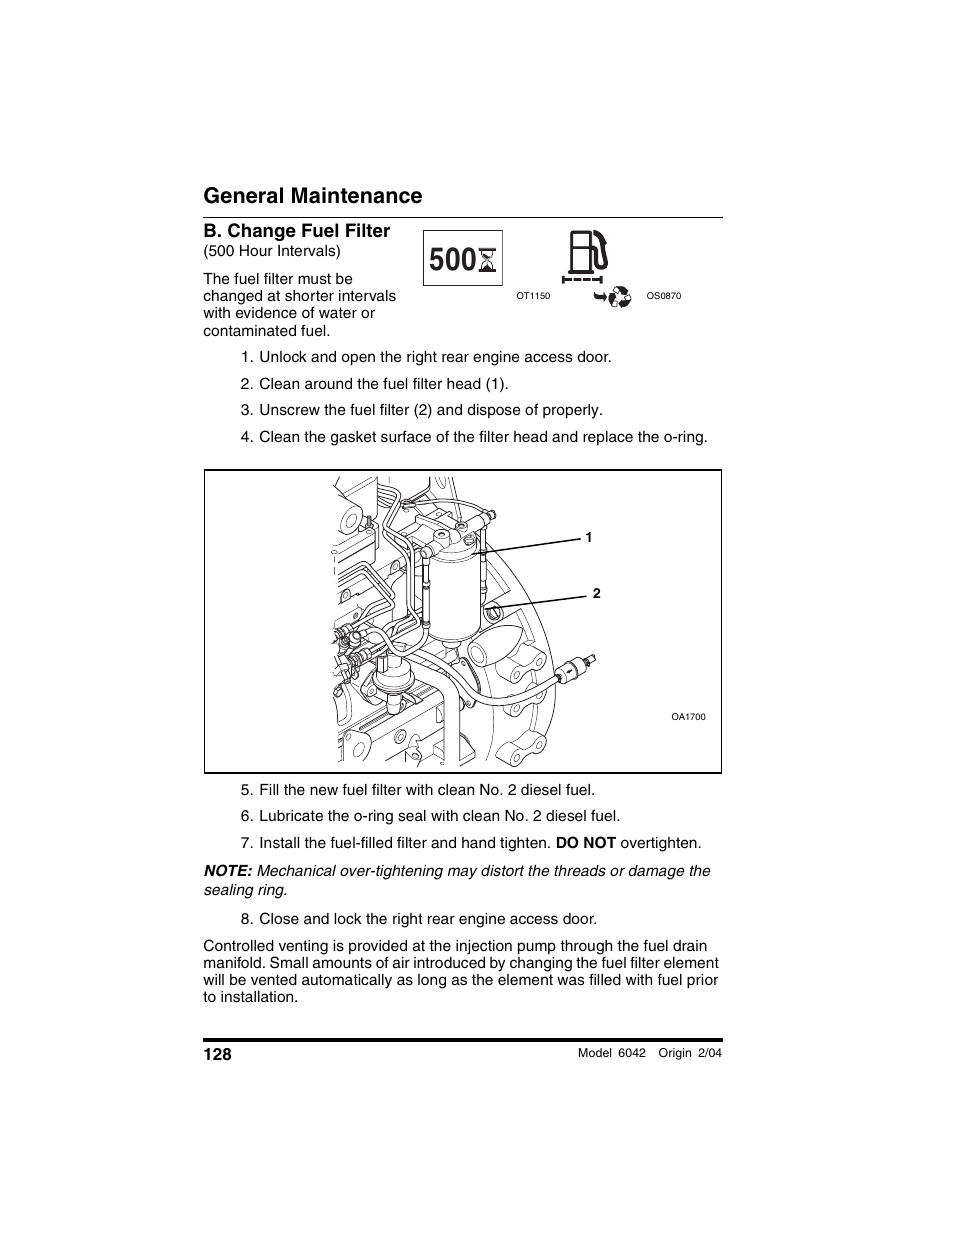 B Change Fuel Filter 500 Hour Intervals Unlock And Open The 7 3 Diesel Replacement Right Rear Engine Access Door Skytrak 6042 Operation Manual User Page 130 196